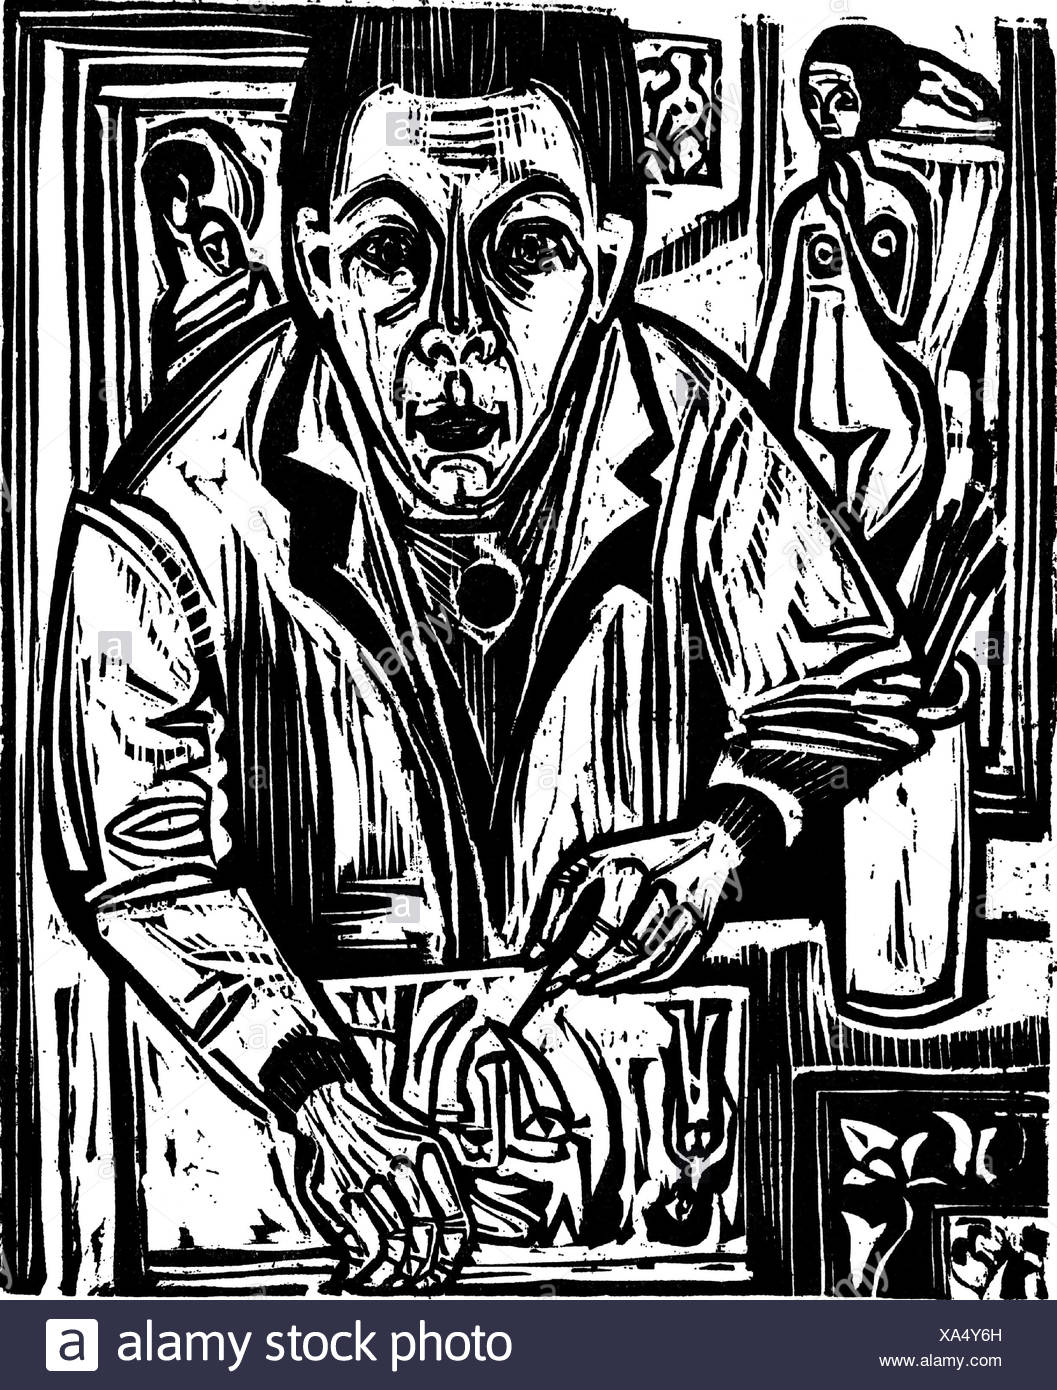 Kirchner, Ernst Ludwig , 6.5.1880 - 15.6.1938, German painter, printmaker, works, self-portrait, drawing, woodcut, 1921, Additional-Rights-Clearances-NA - Stock Image